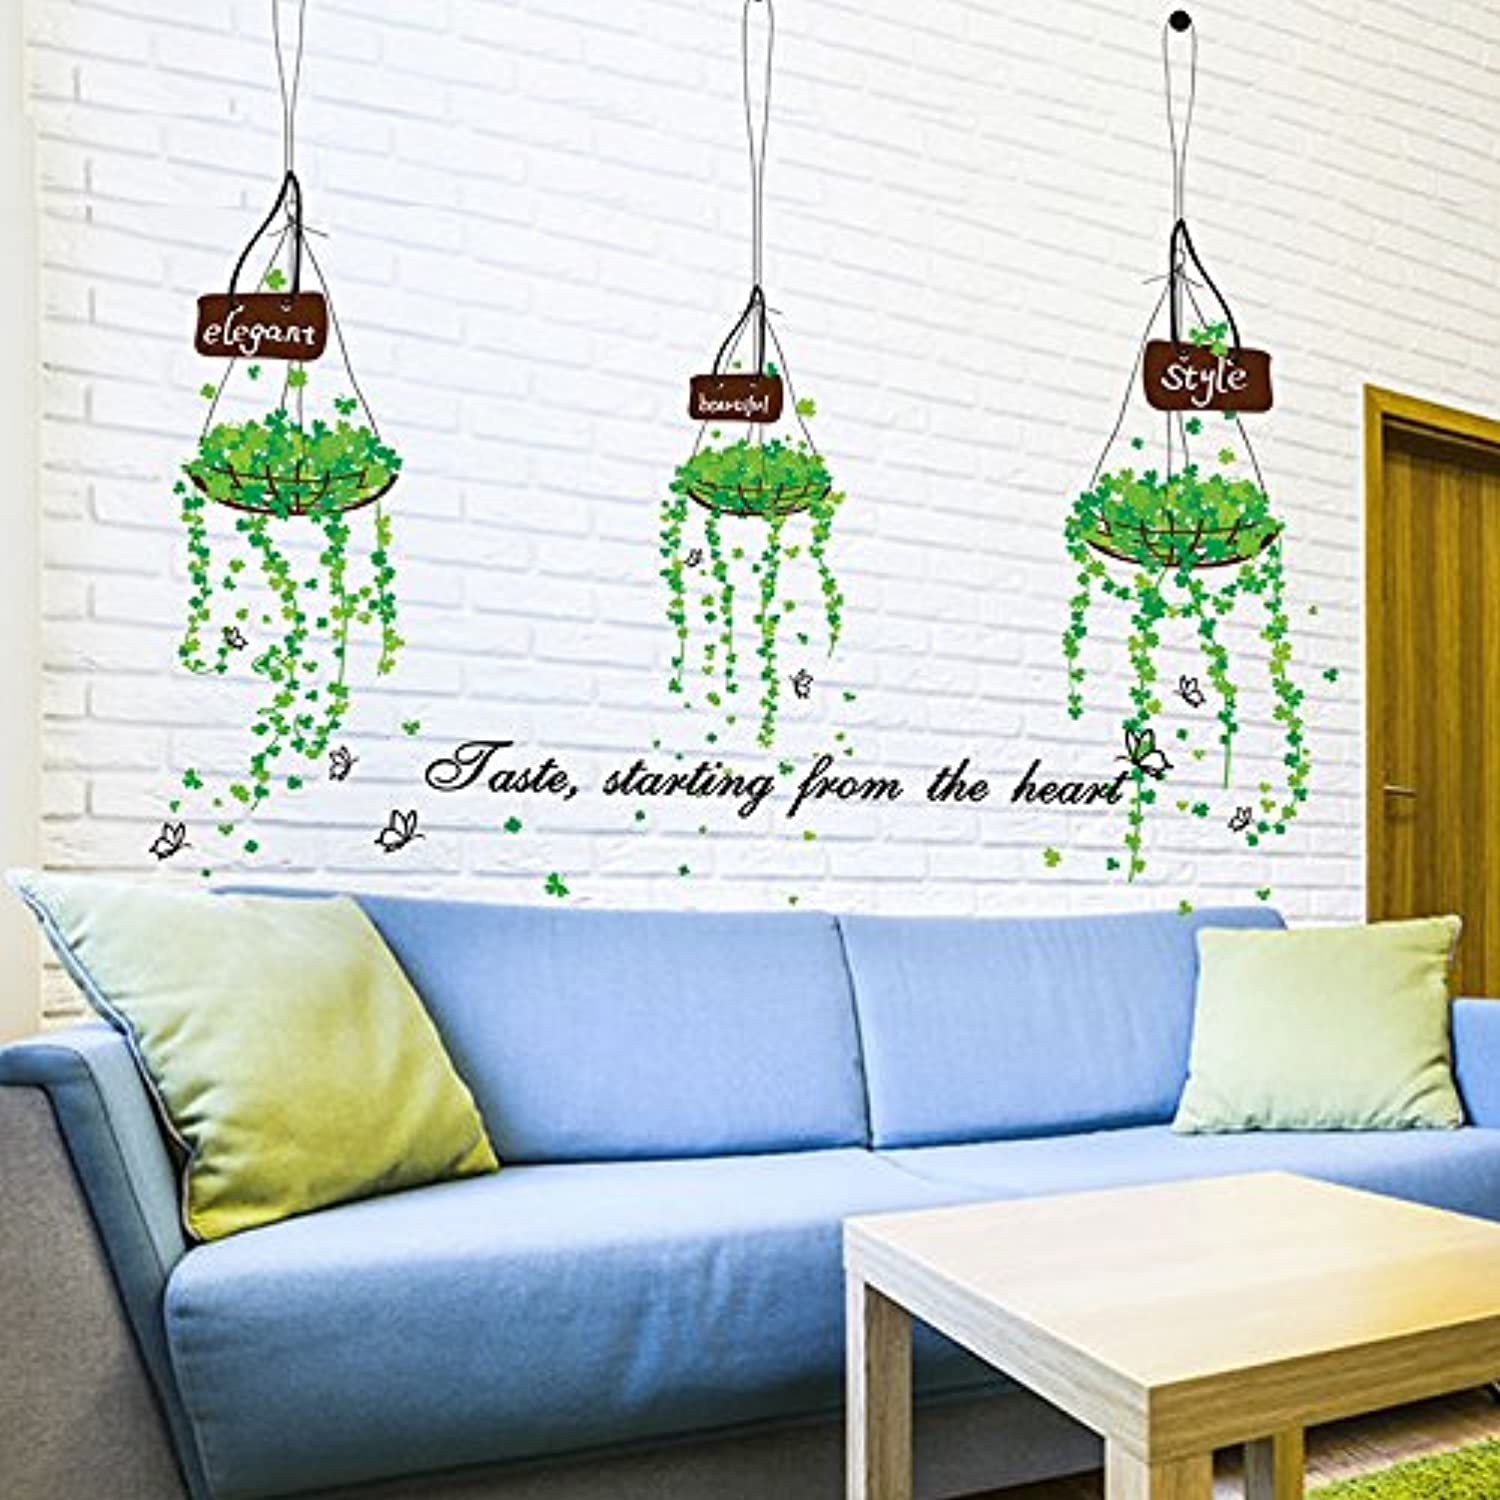 Znzbzt The Elegant and Fresh Wall Sticker Wall Art Simple and Innovative Decor self Adhesive Wall Painting, Basket